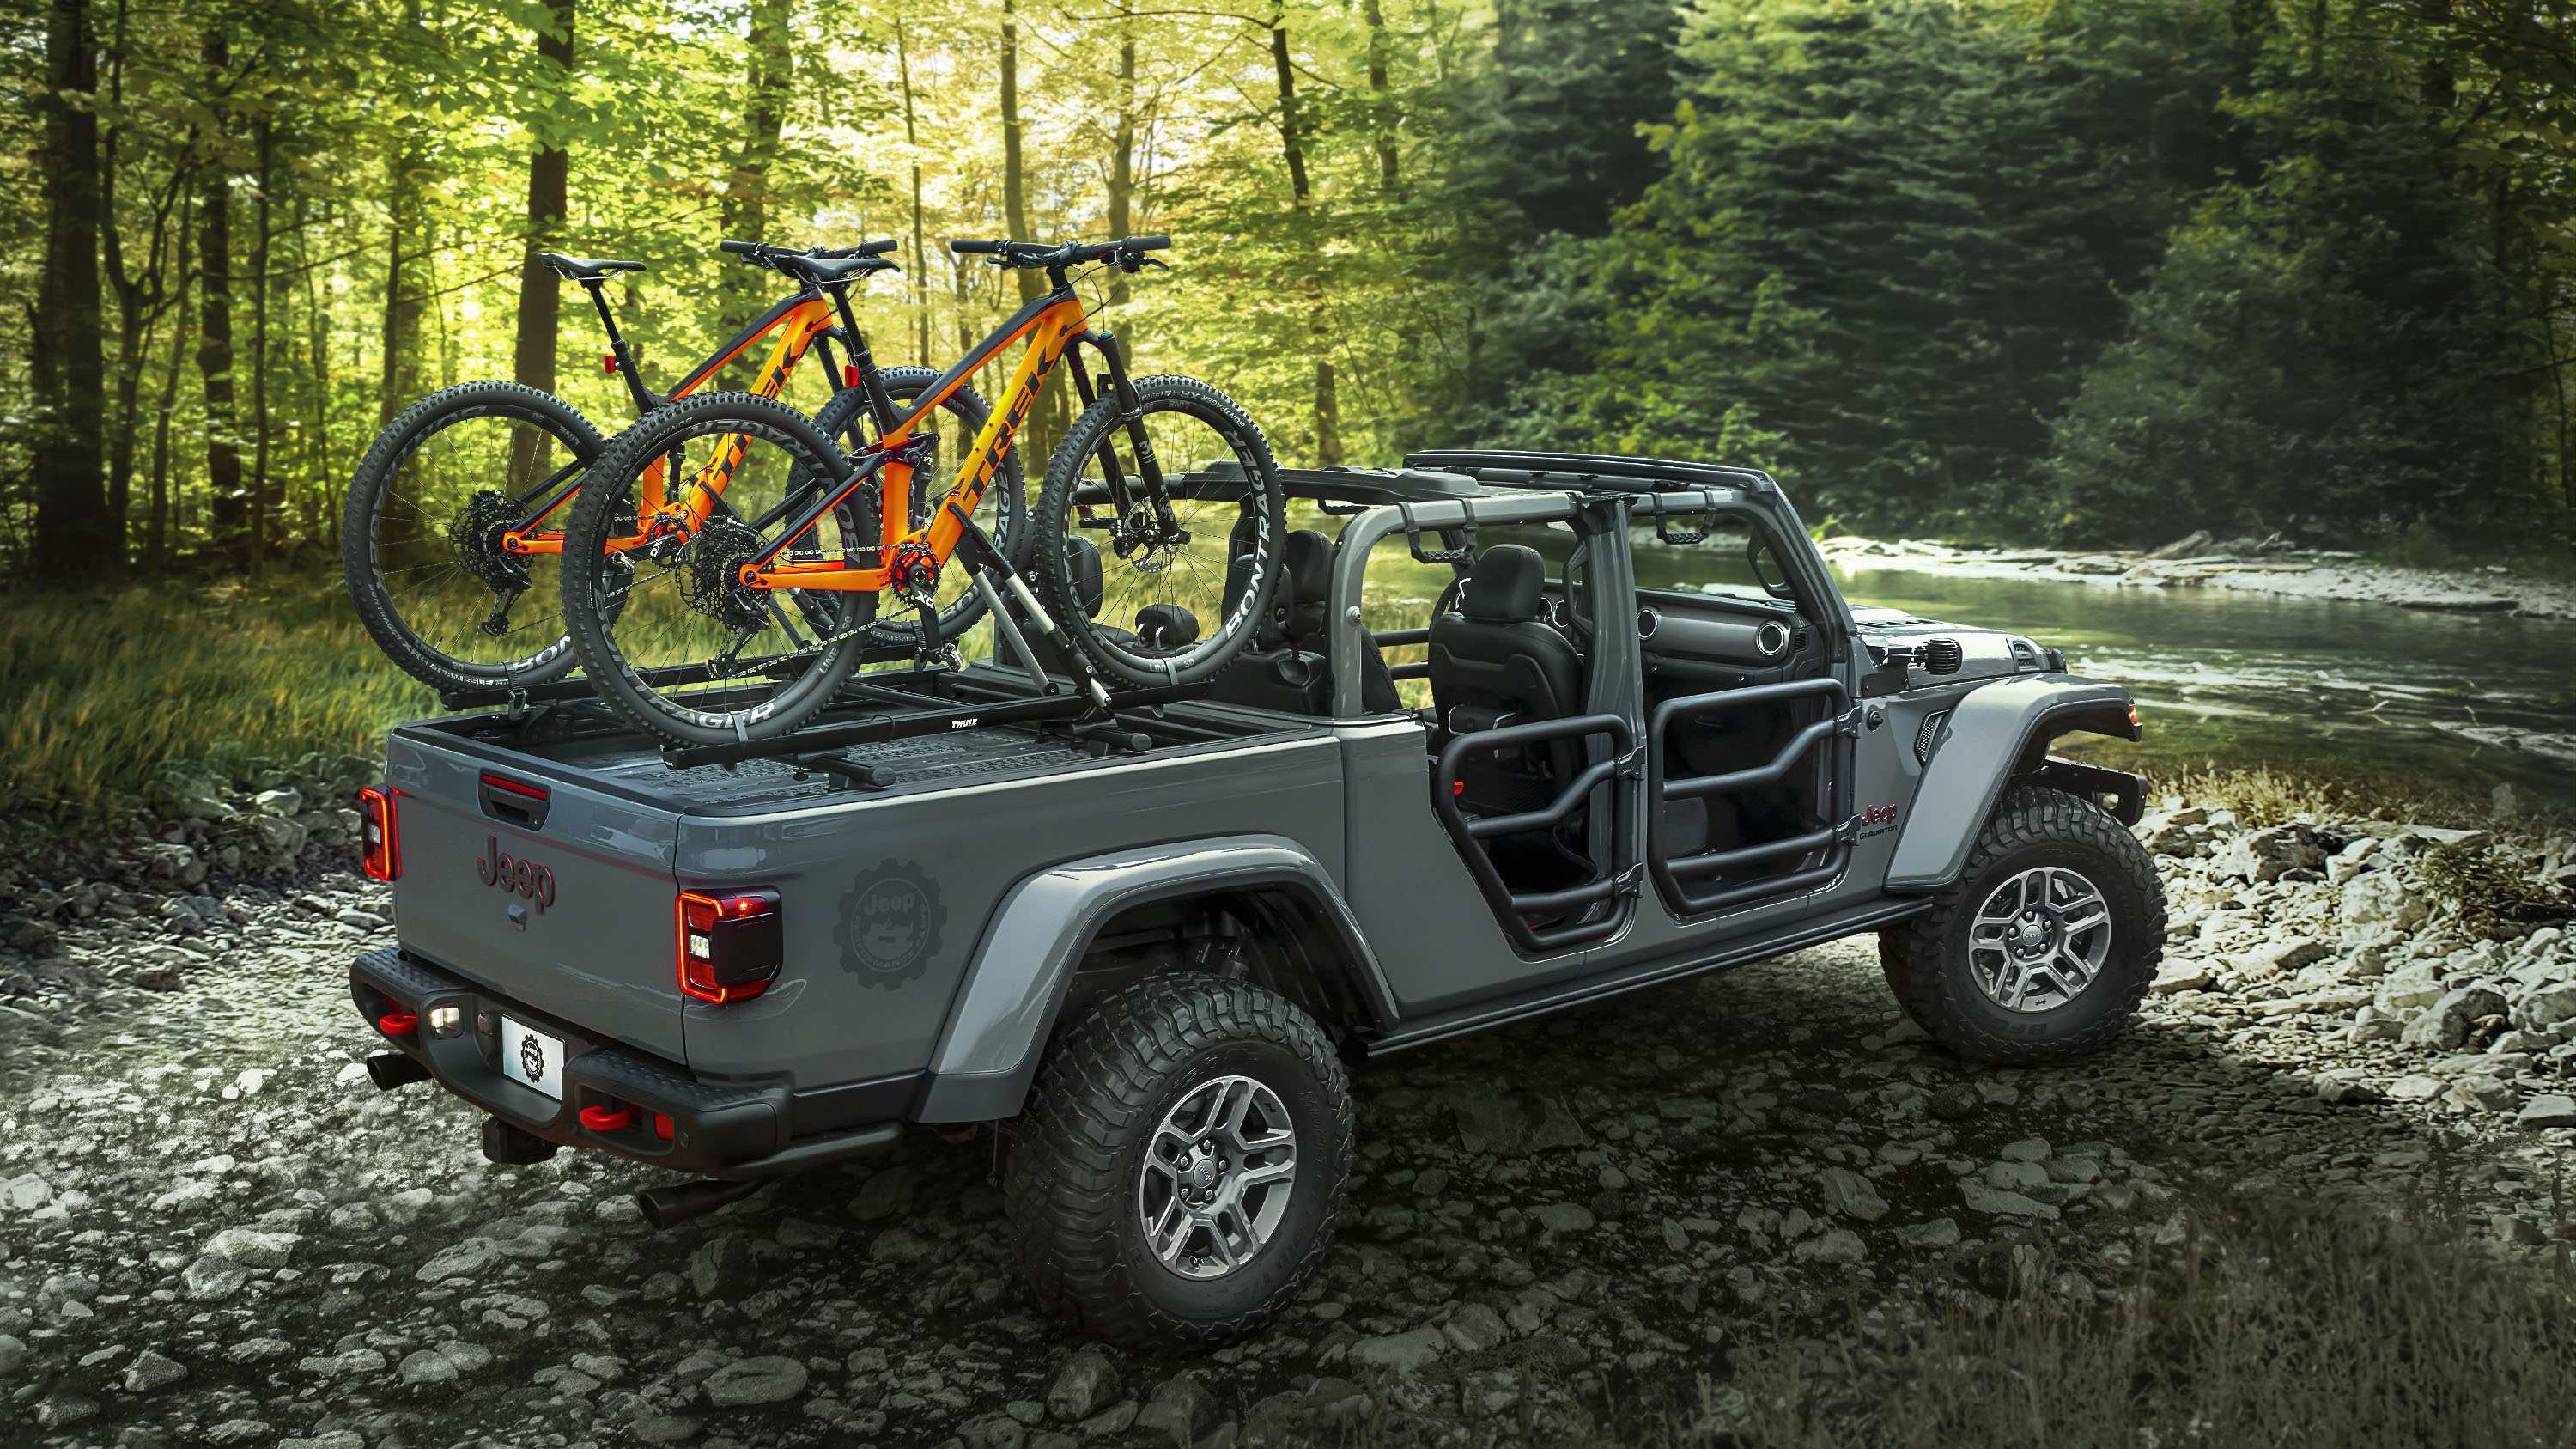 77 New 2020 Jeep Gladiator Mopar Lift Kit Pictures by 2020 Jeep Gladiator Mopar Lift Kit